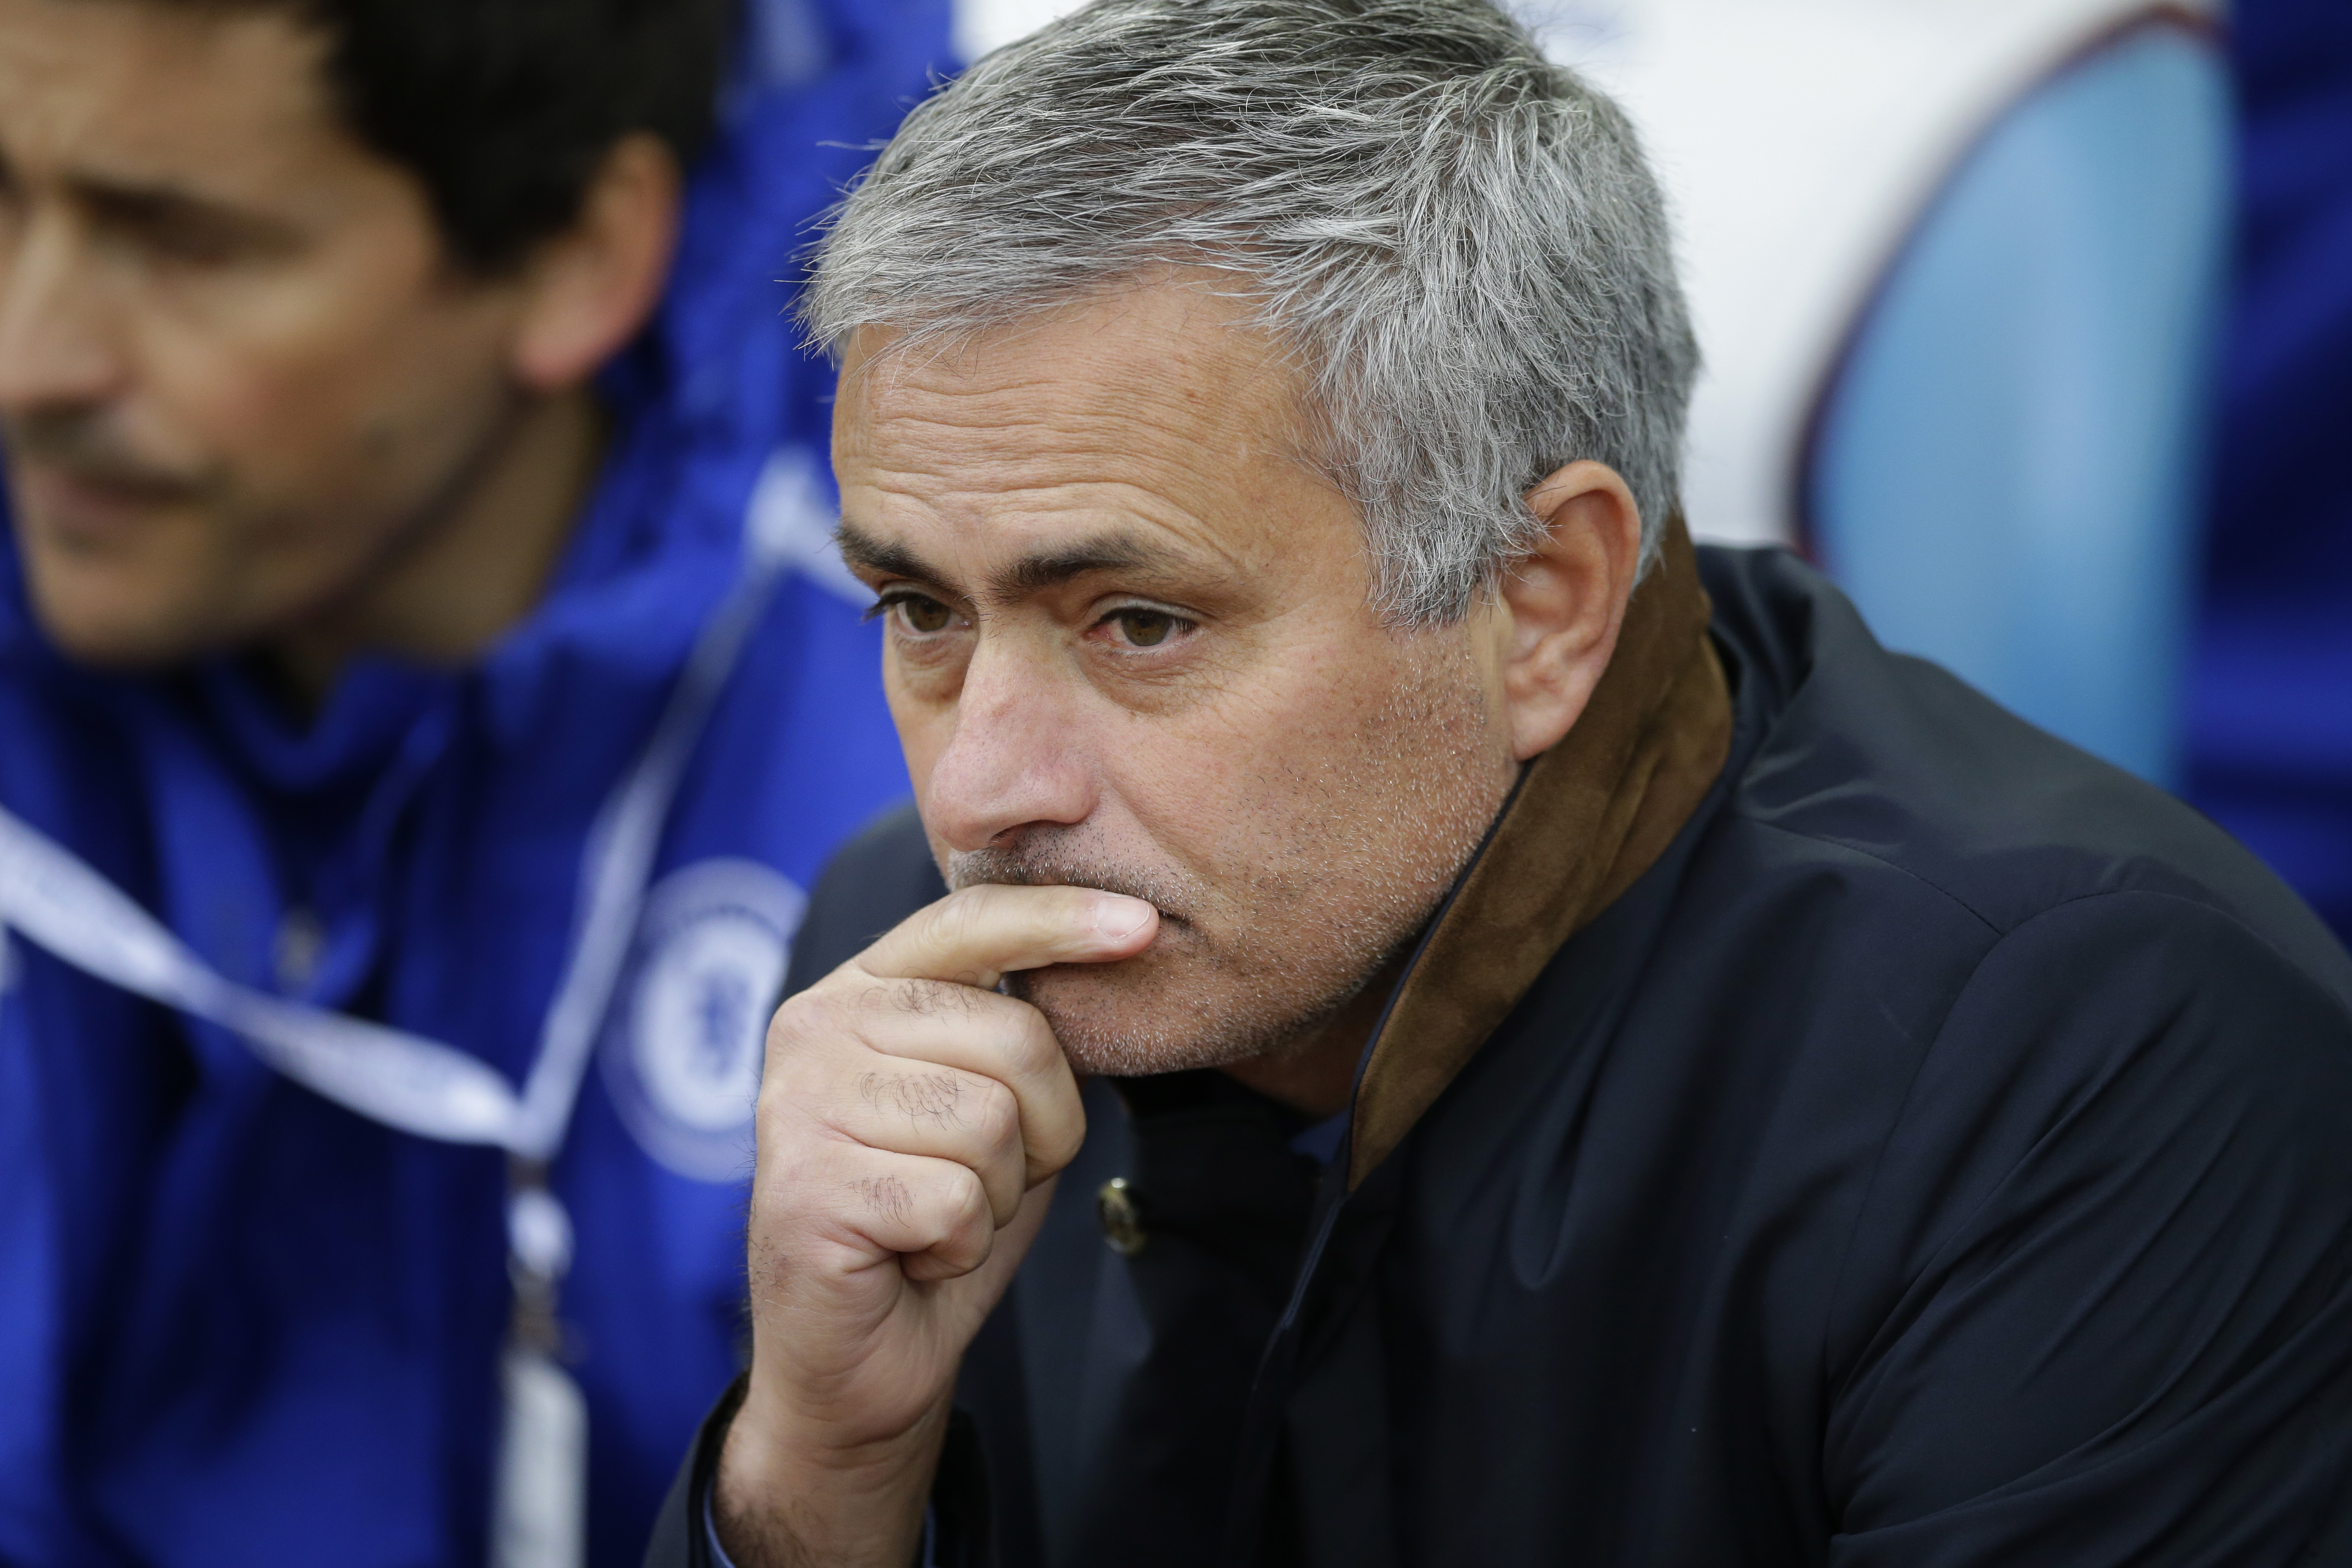 Chelsea's head coach Jose Mourinho waits for the English Premier League soccer match between West Ham and Chelsea to begin, at Upton Park stadium in London, Saturday, Oct. 24, 2015.  (AP Photo/Matt Dunham)